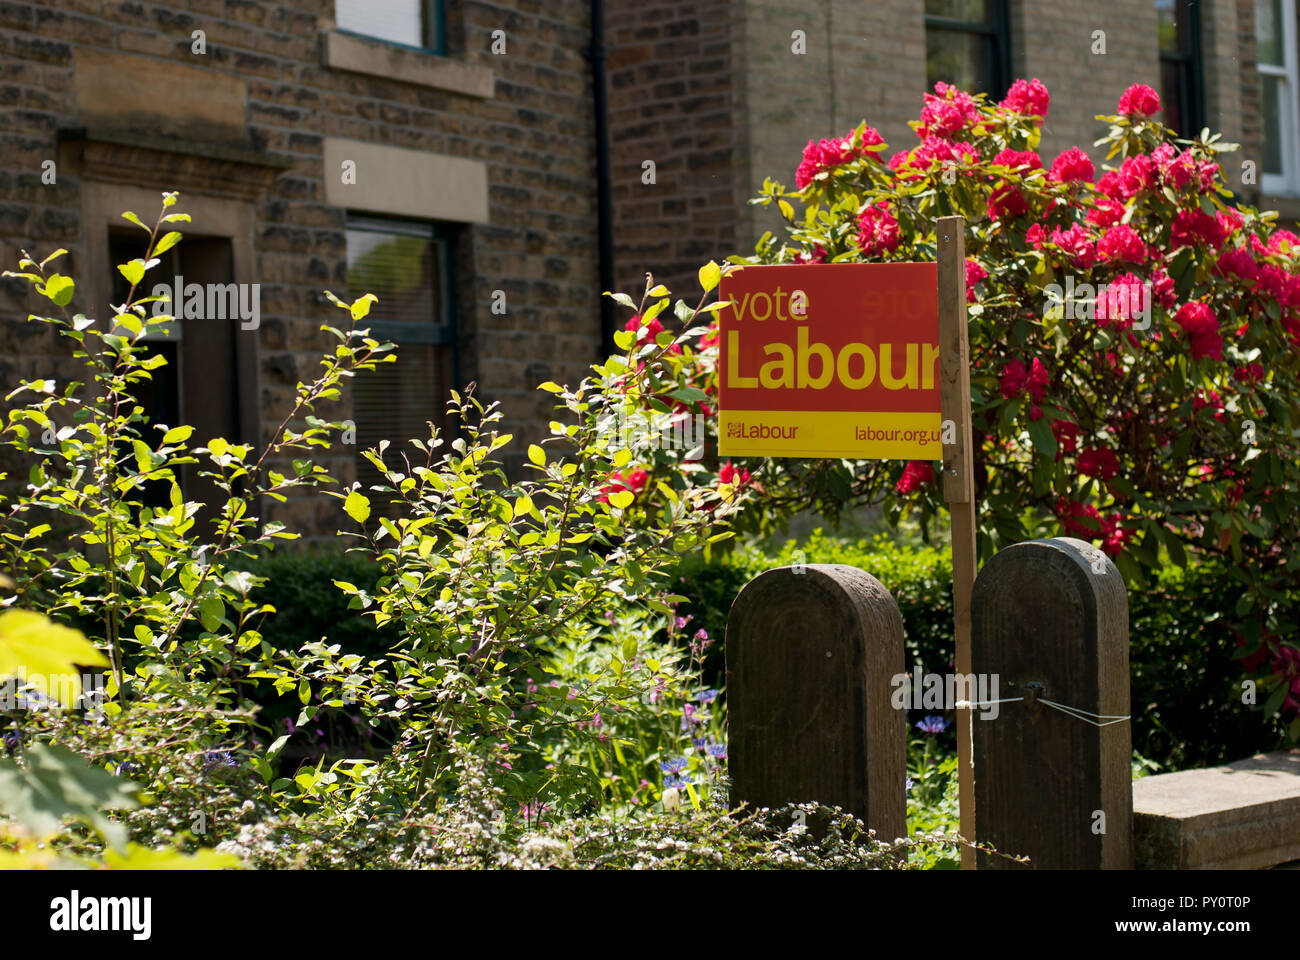 Vote Labour - a sign on a gatepost in a north Derbyshire town. - Stock Image